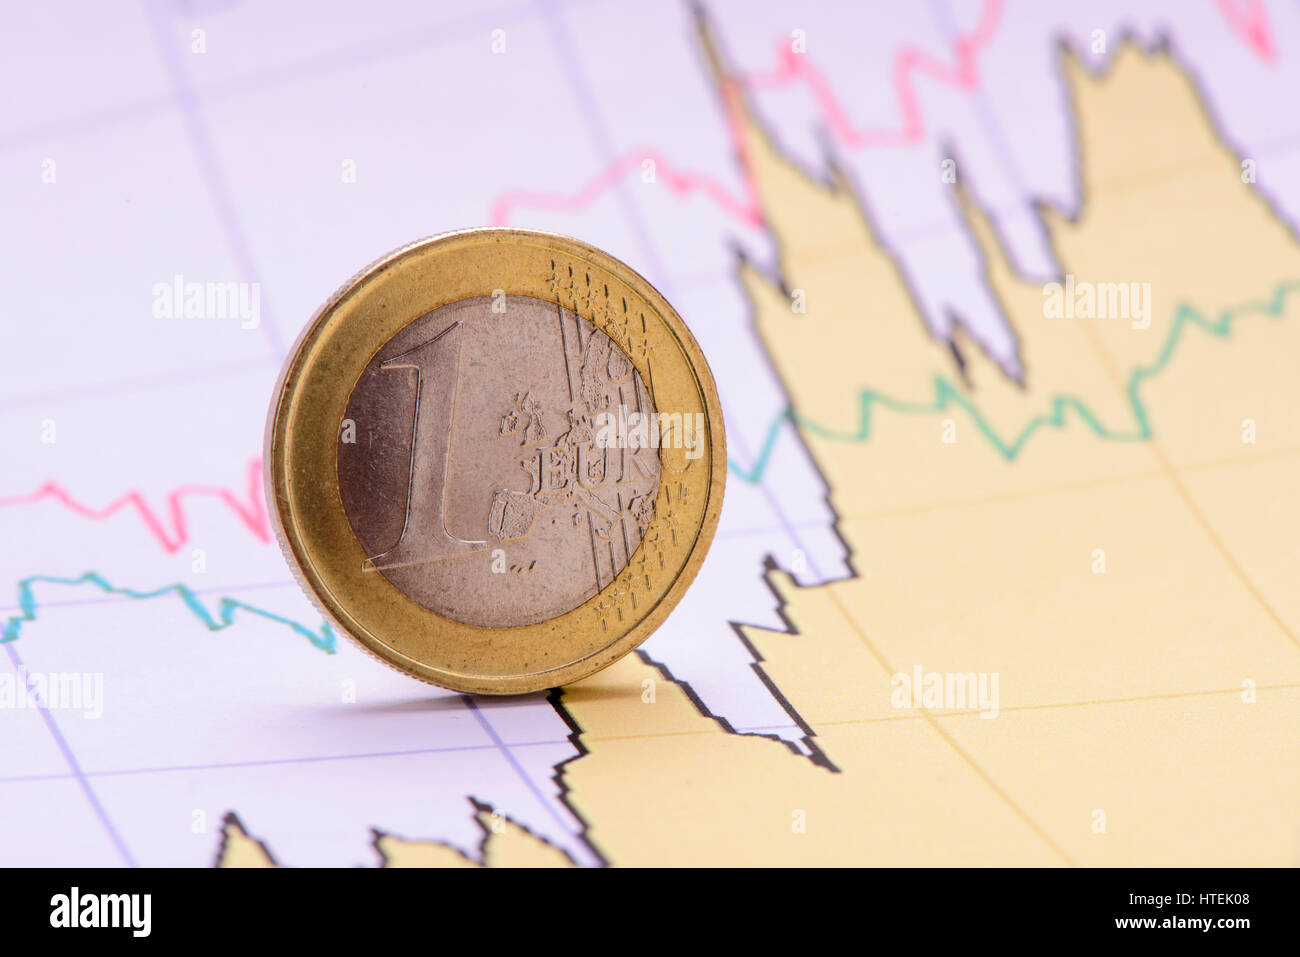 euro coin on financial business chart Stock Photo